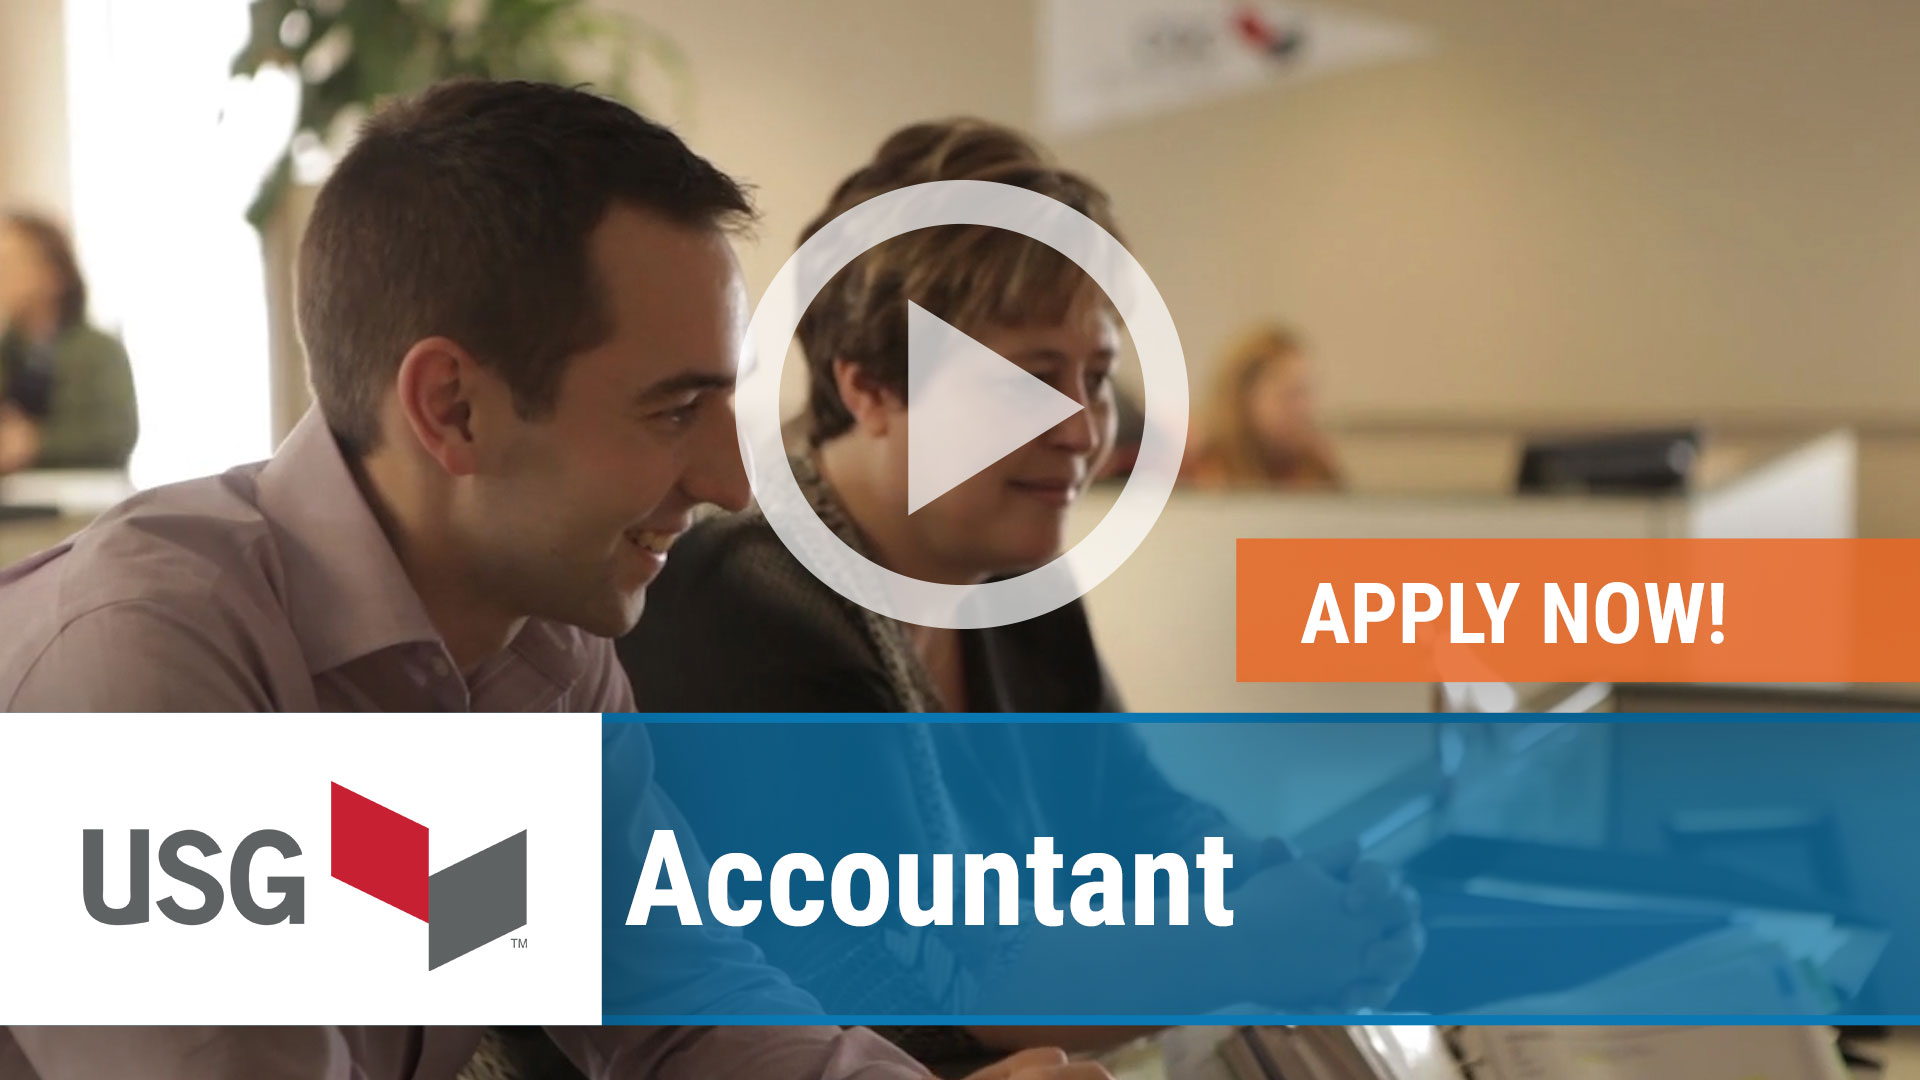 Watch our careers video for available job opening Accountant in Chicago, Illinois